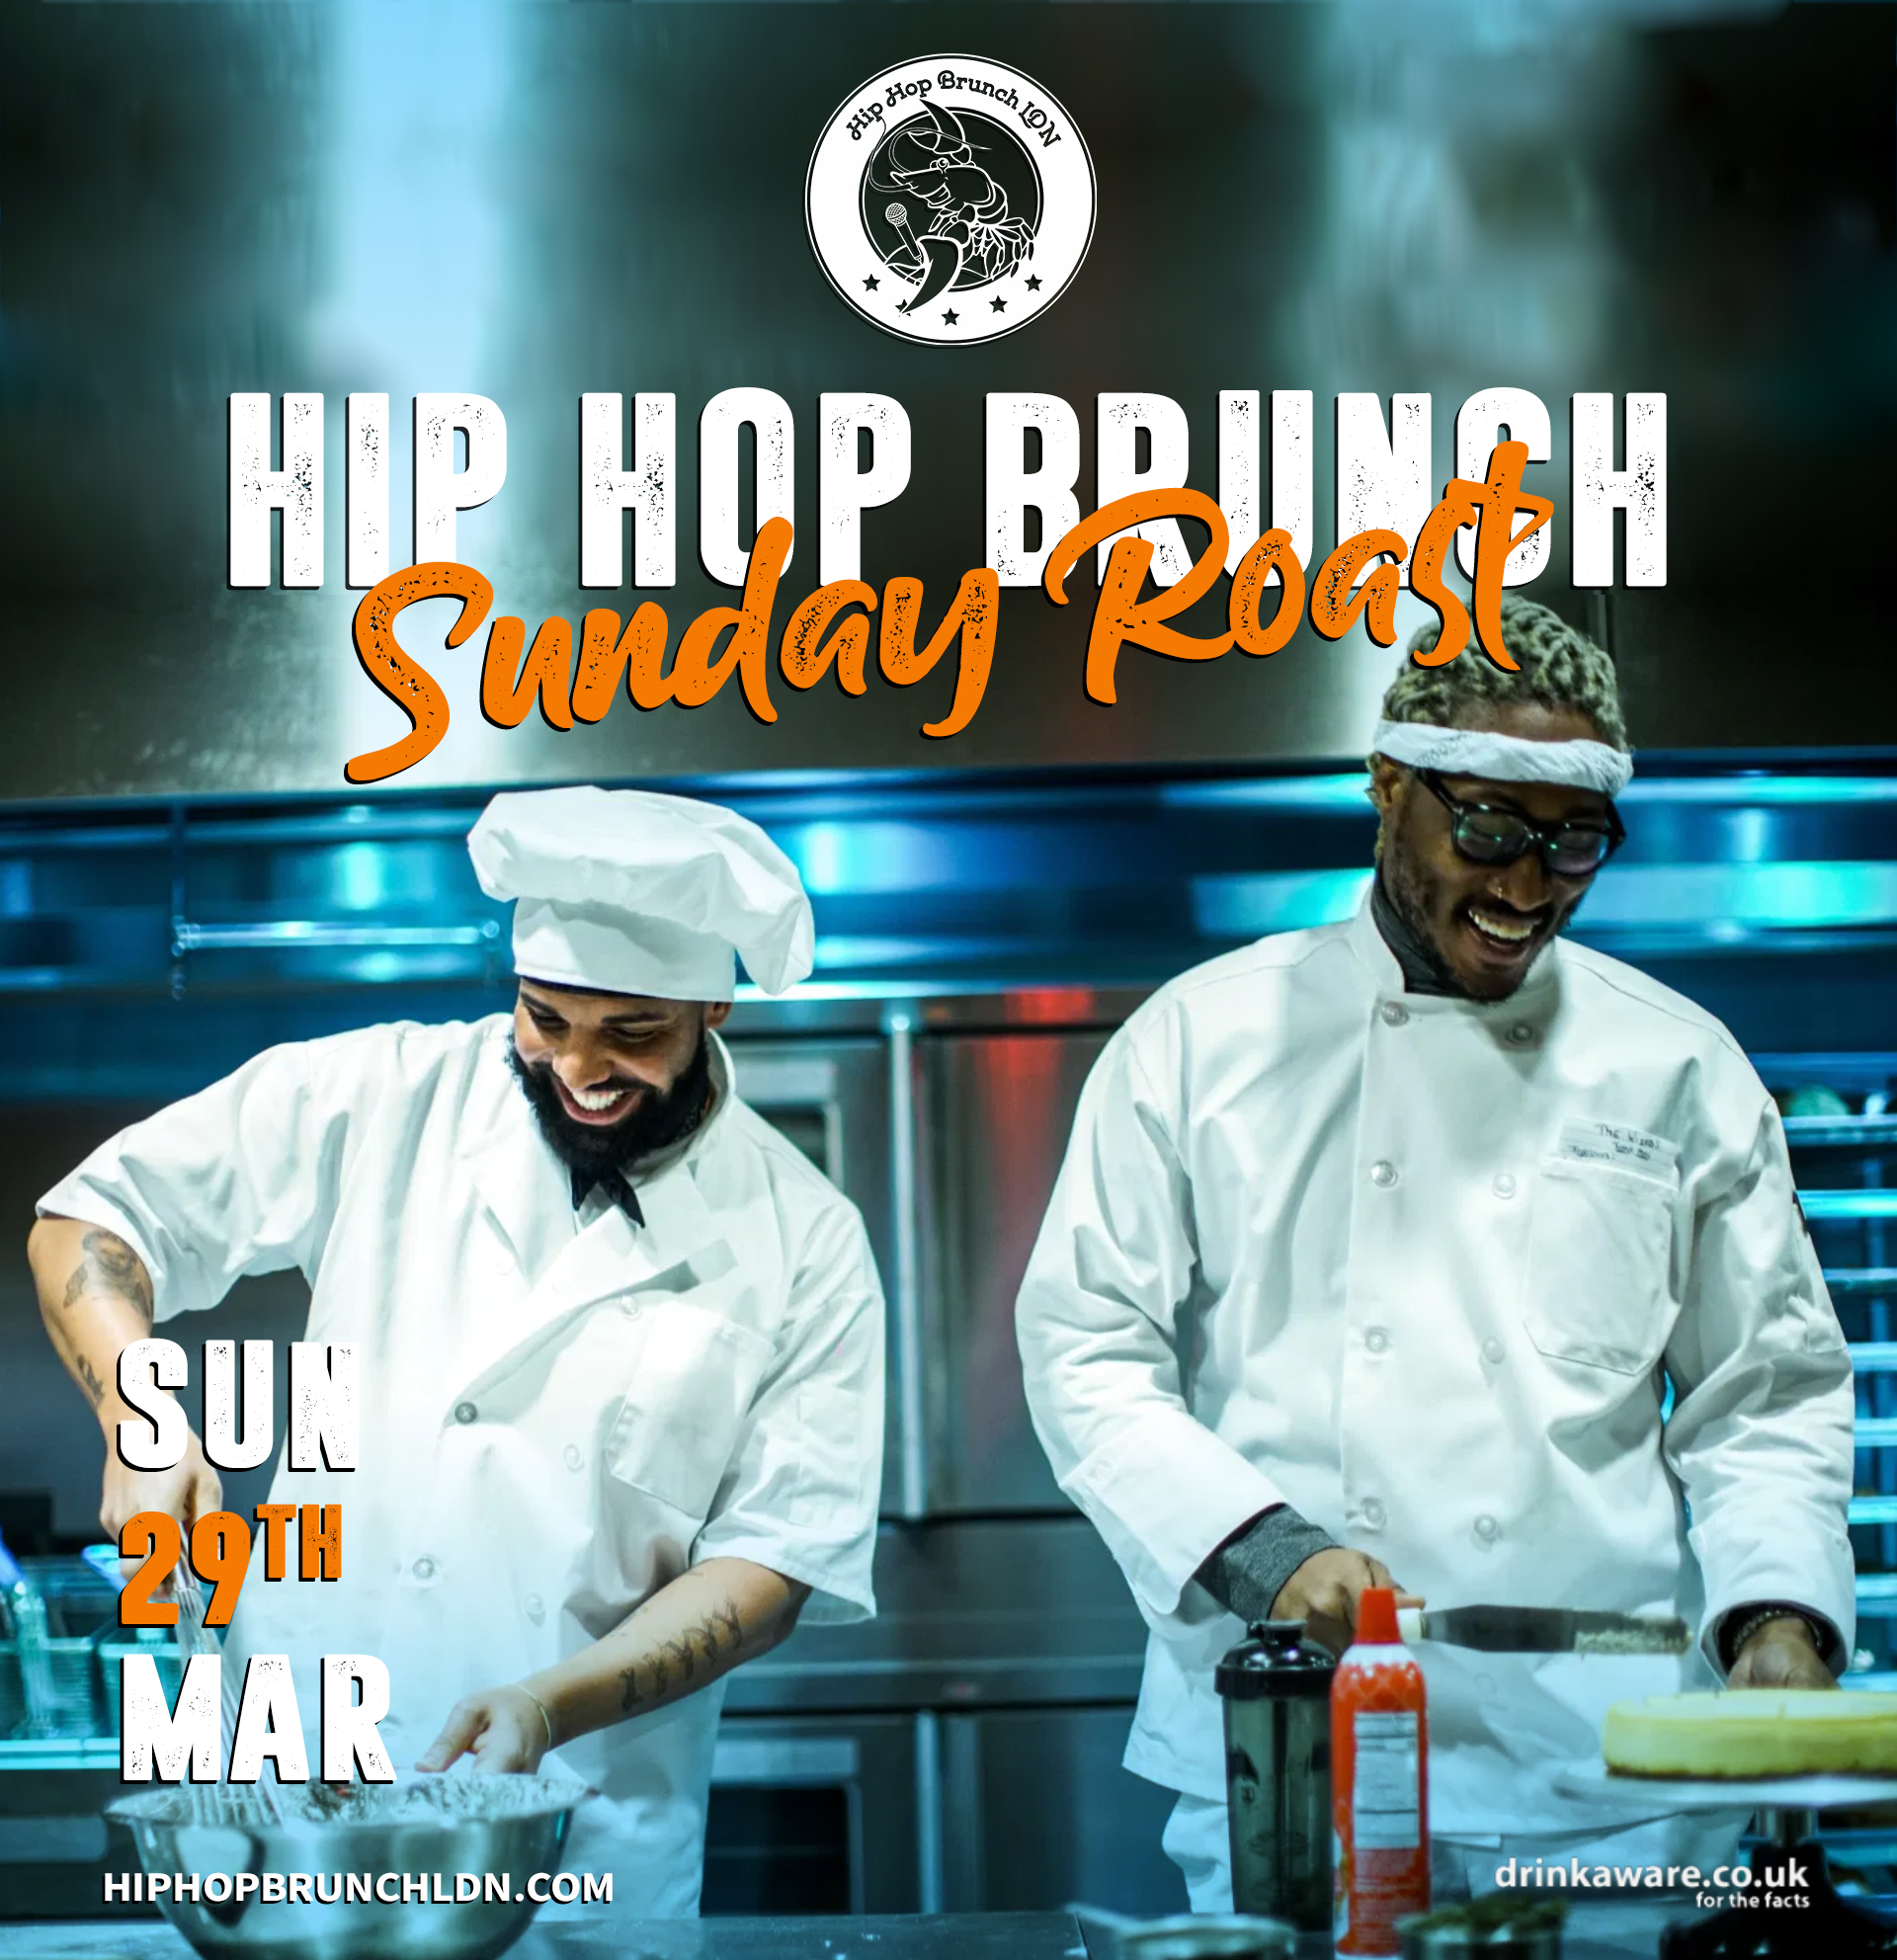 Hip Hop Brunch: Sunday Roast